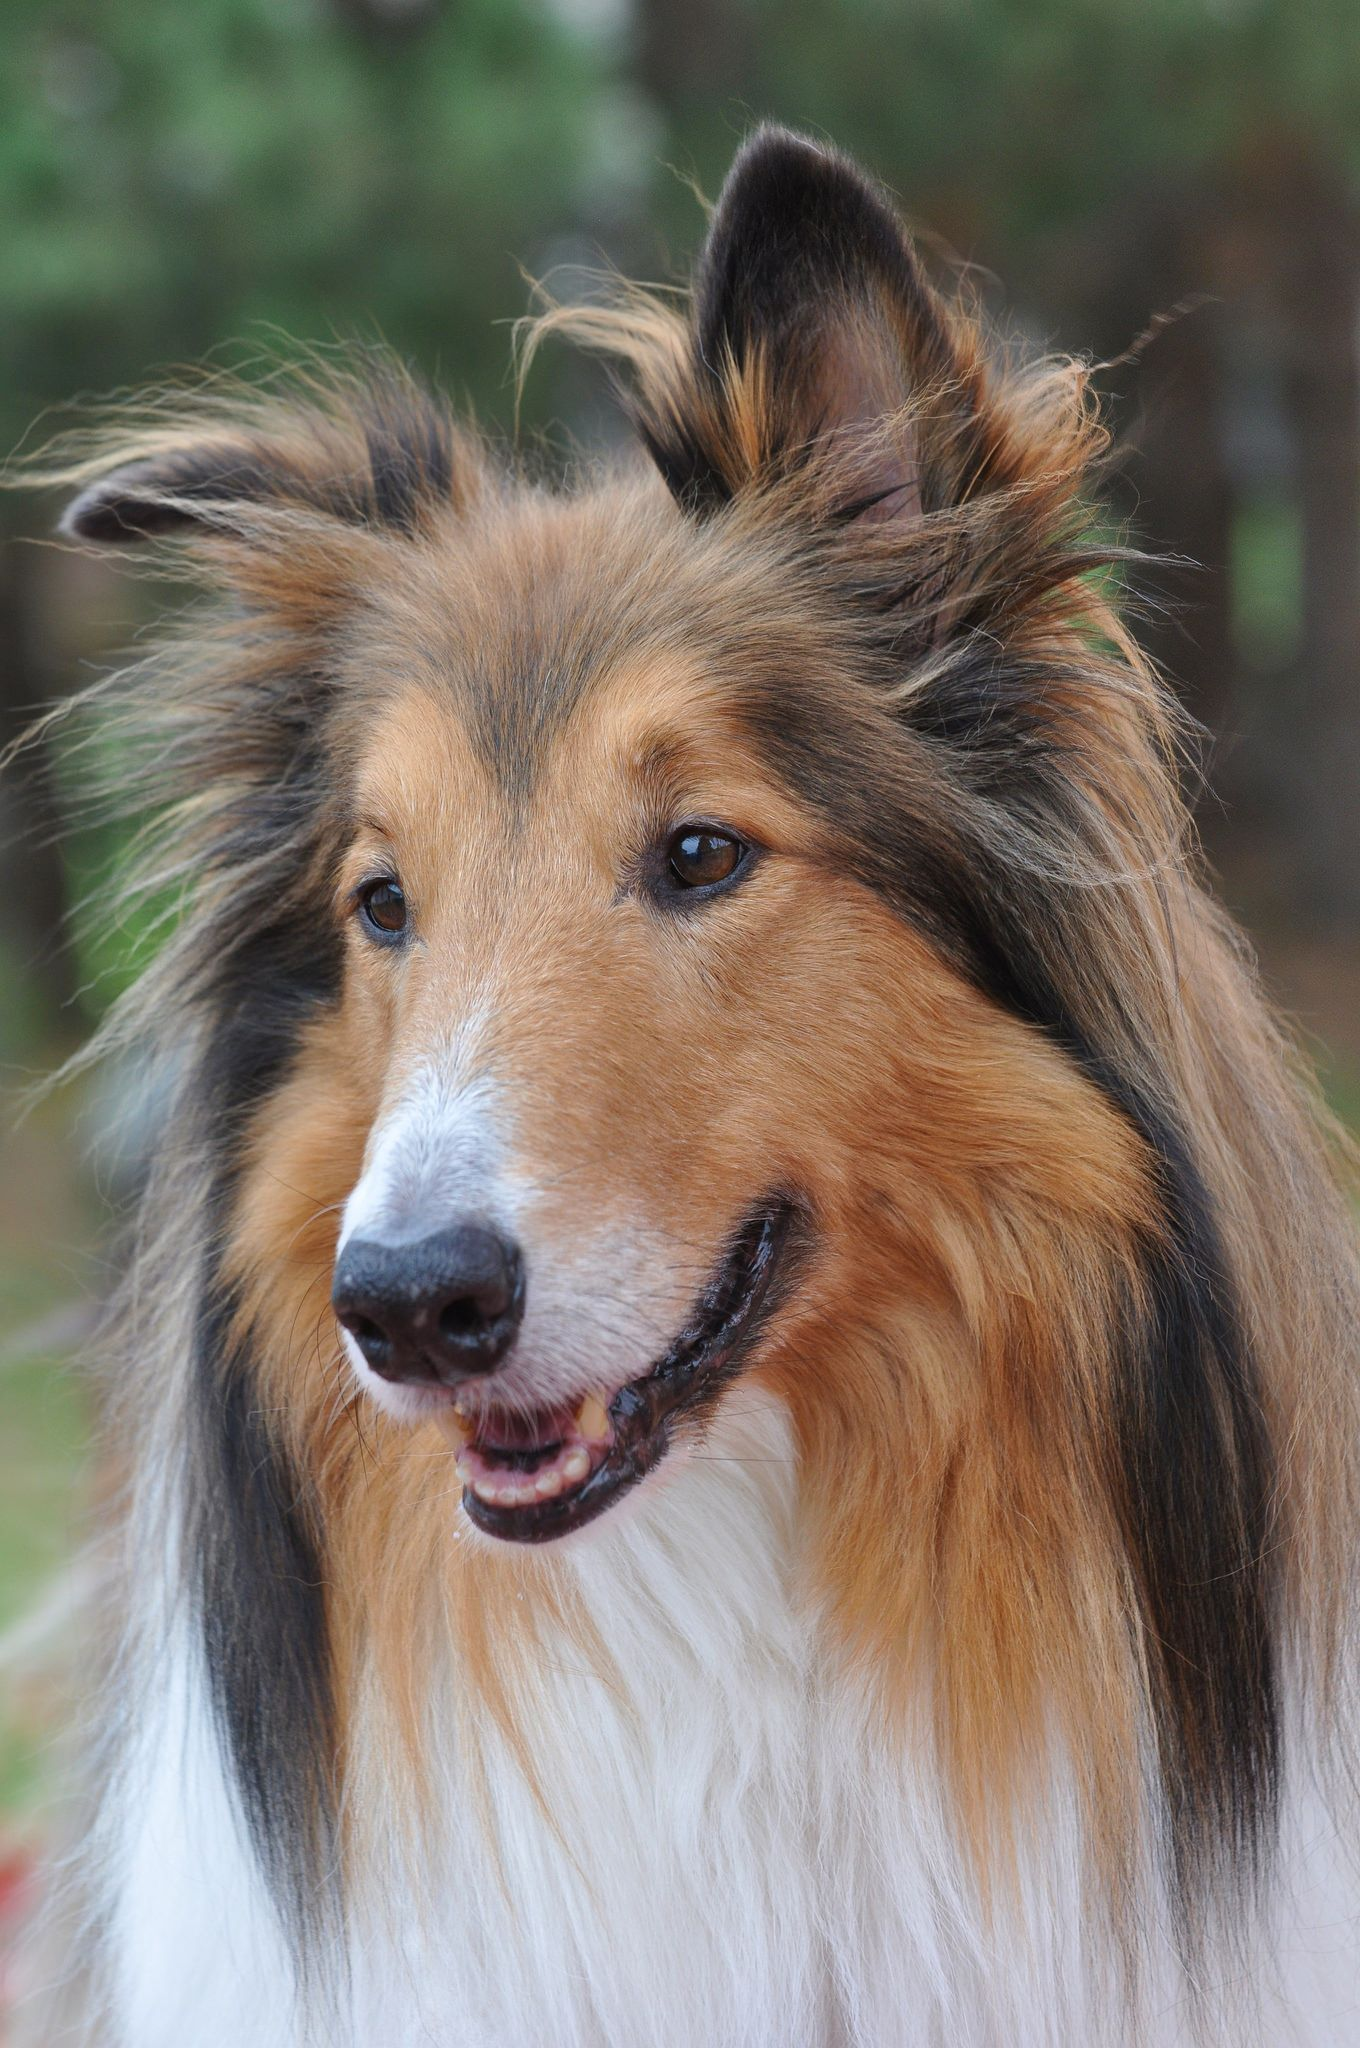 Our Sable And White Rough Collie Buddy Best Dog Ever 1121 Rough Collie Dogs Collie